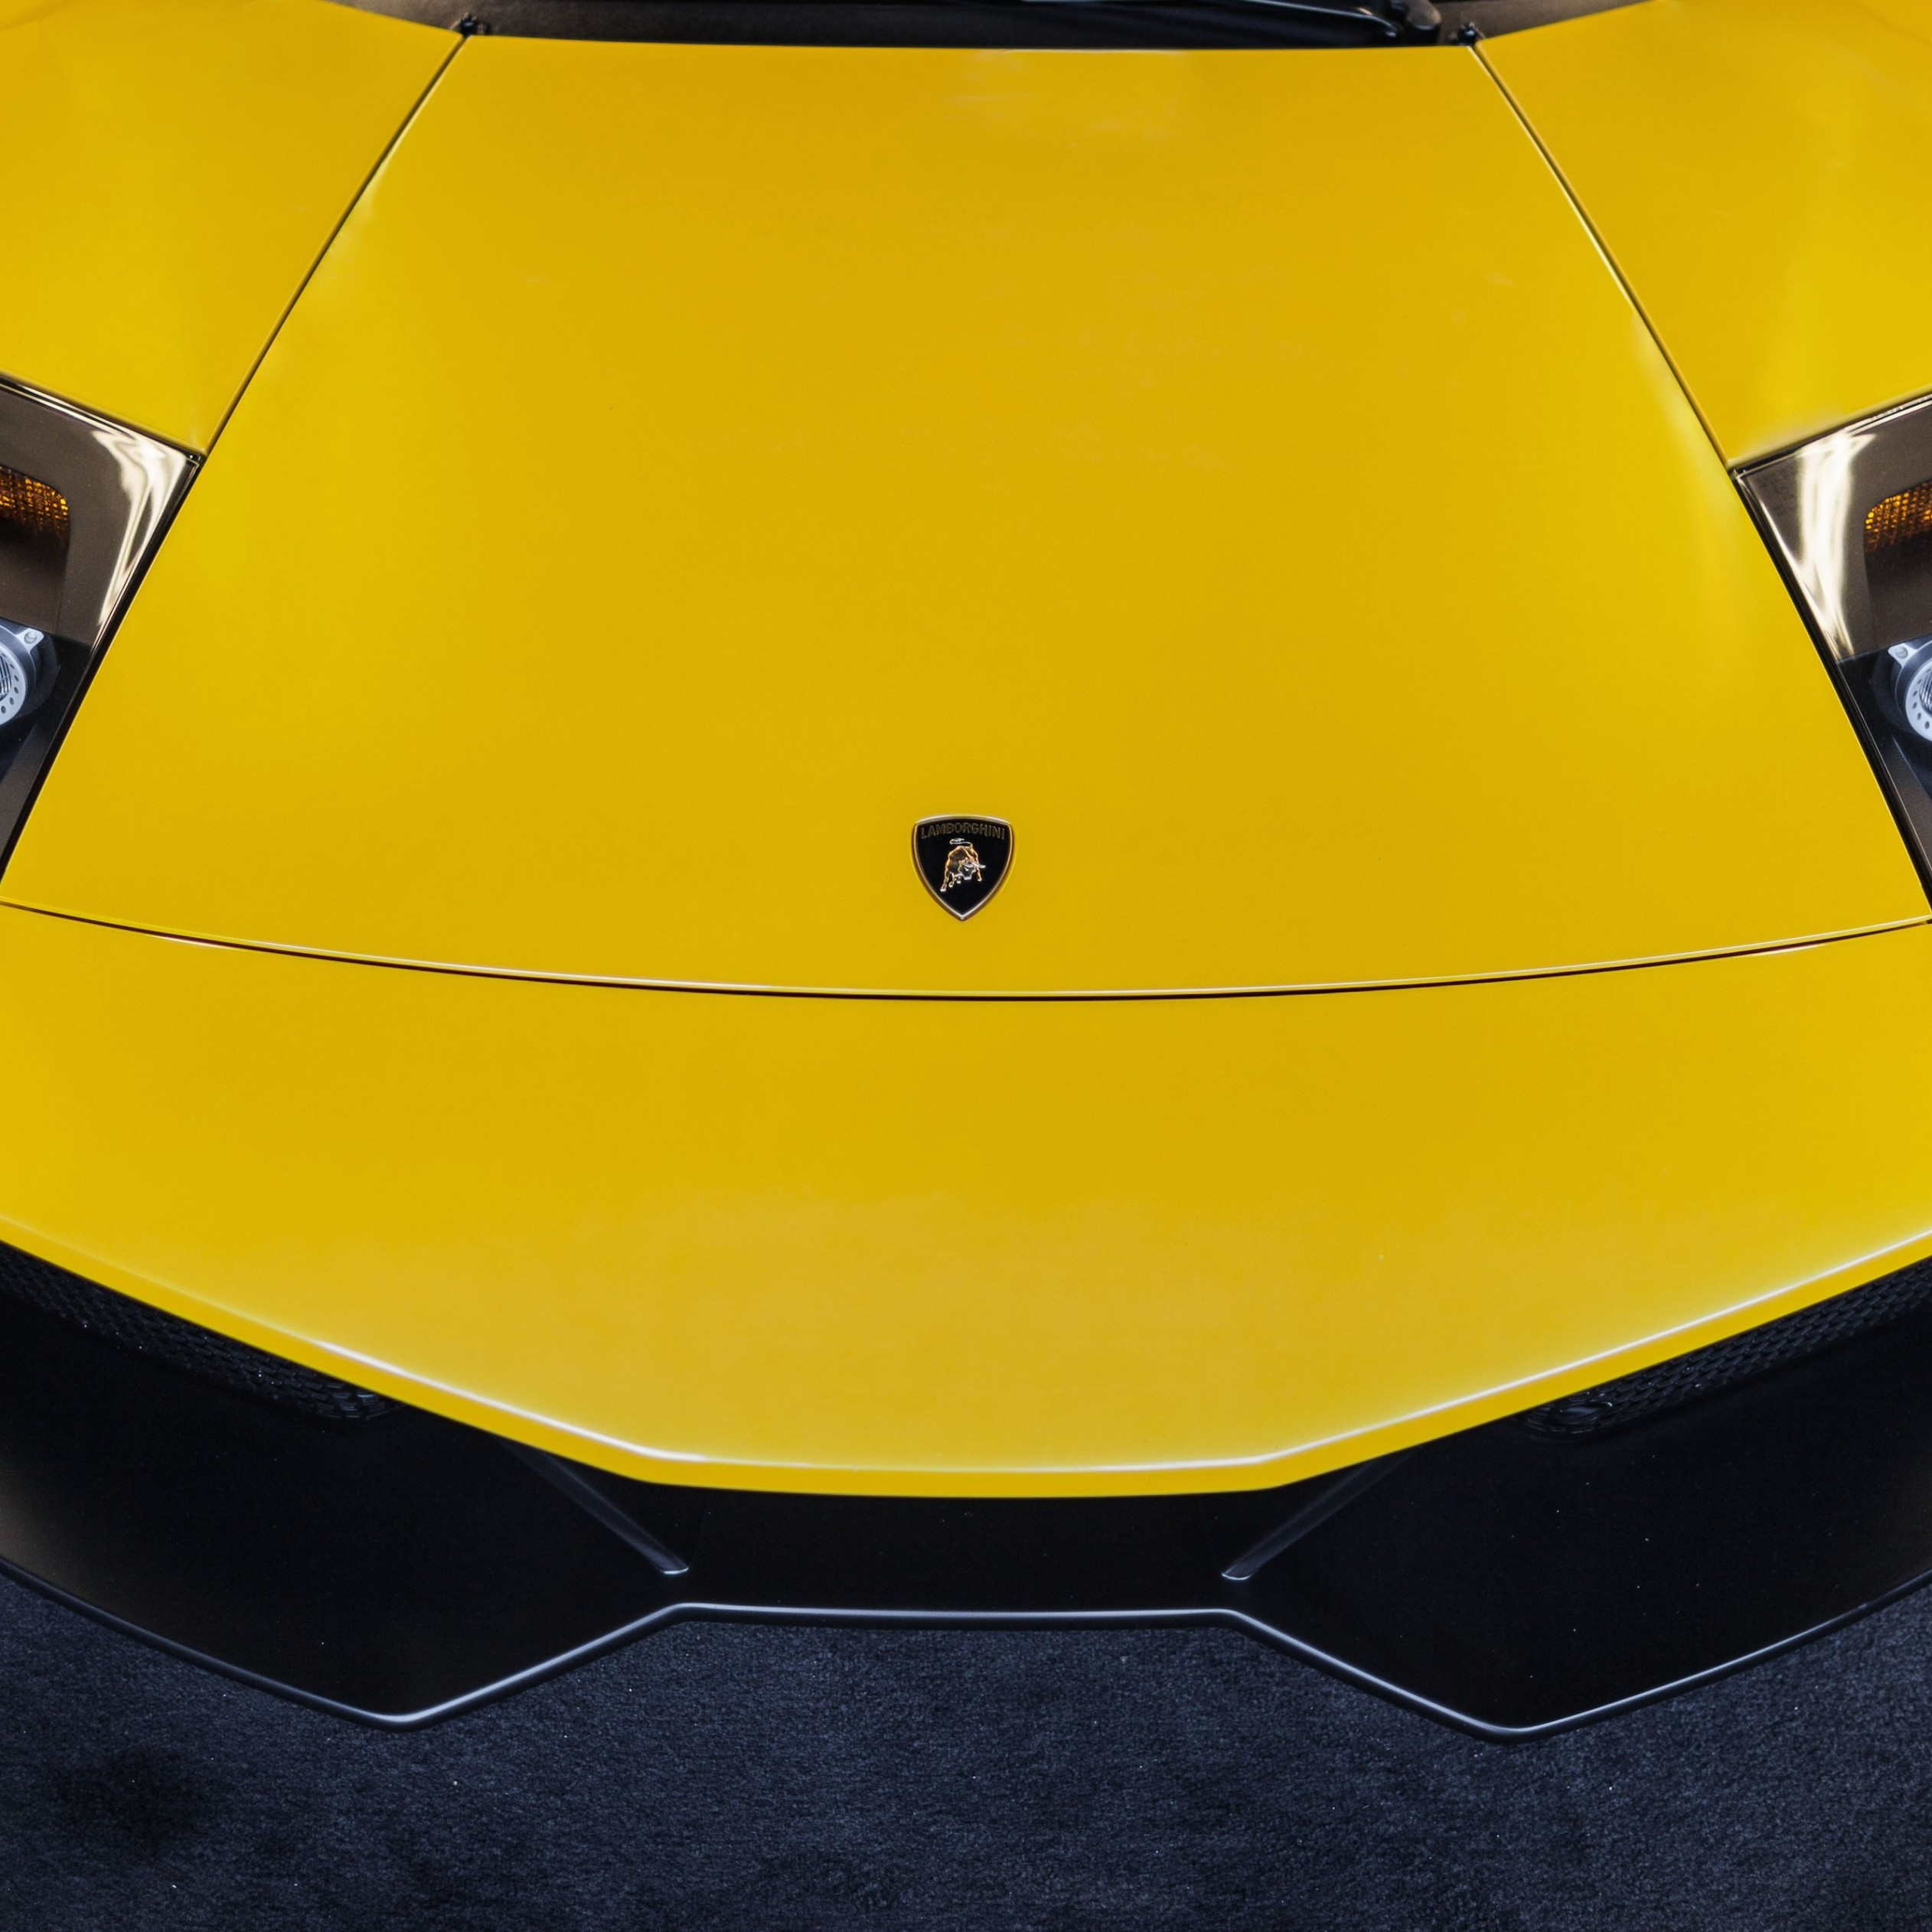 Lamborghini Murcielago LP670 Front Wallpaper for Apple iPad Air